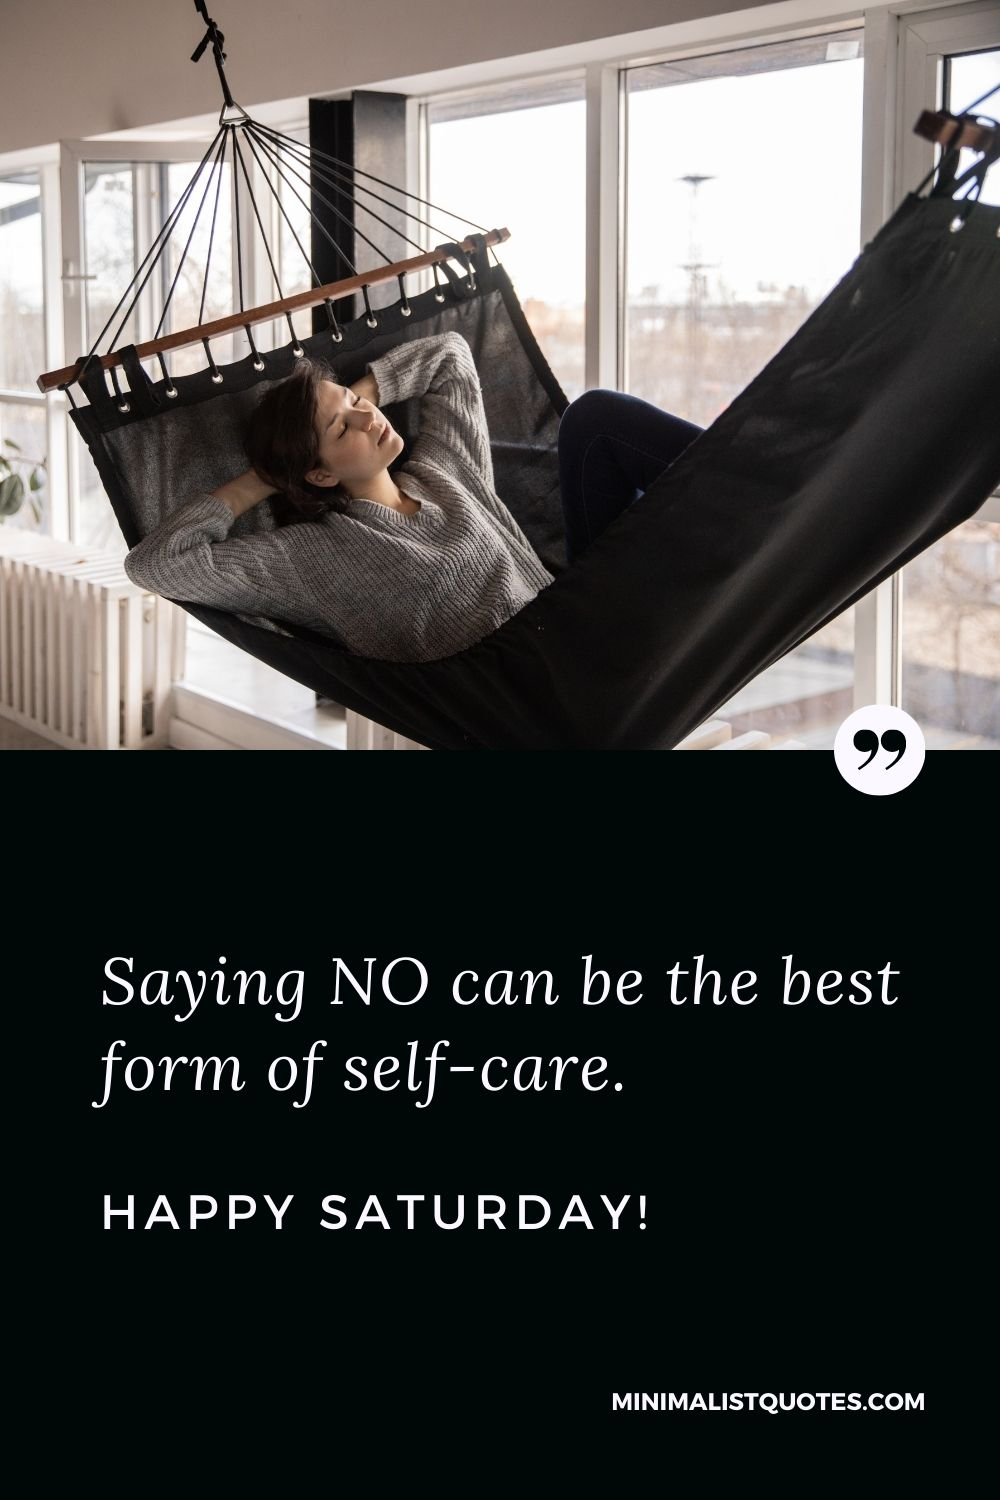 Saturday Quote, Wish & Message With Image: Saying NO can be the best form of self-care. Happy Saturday!